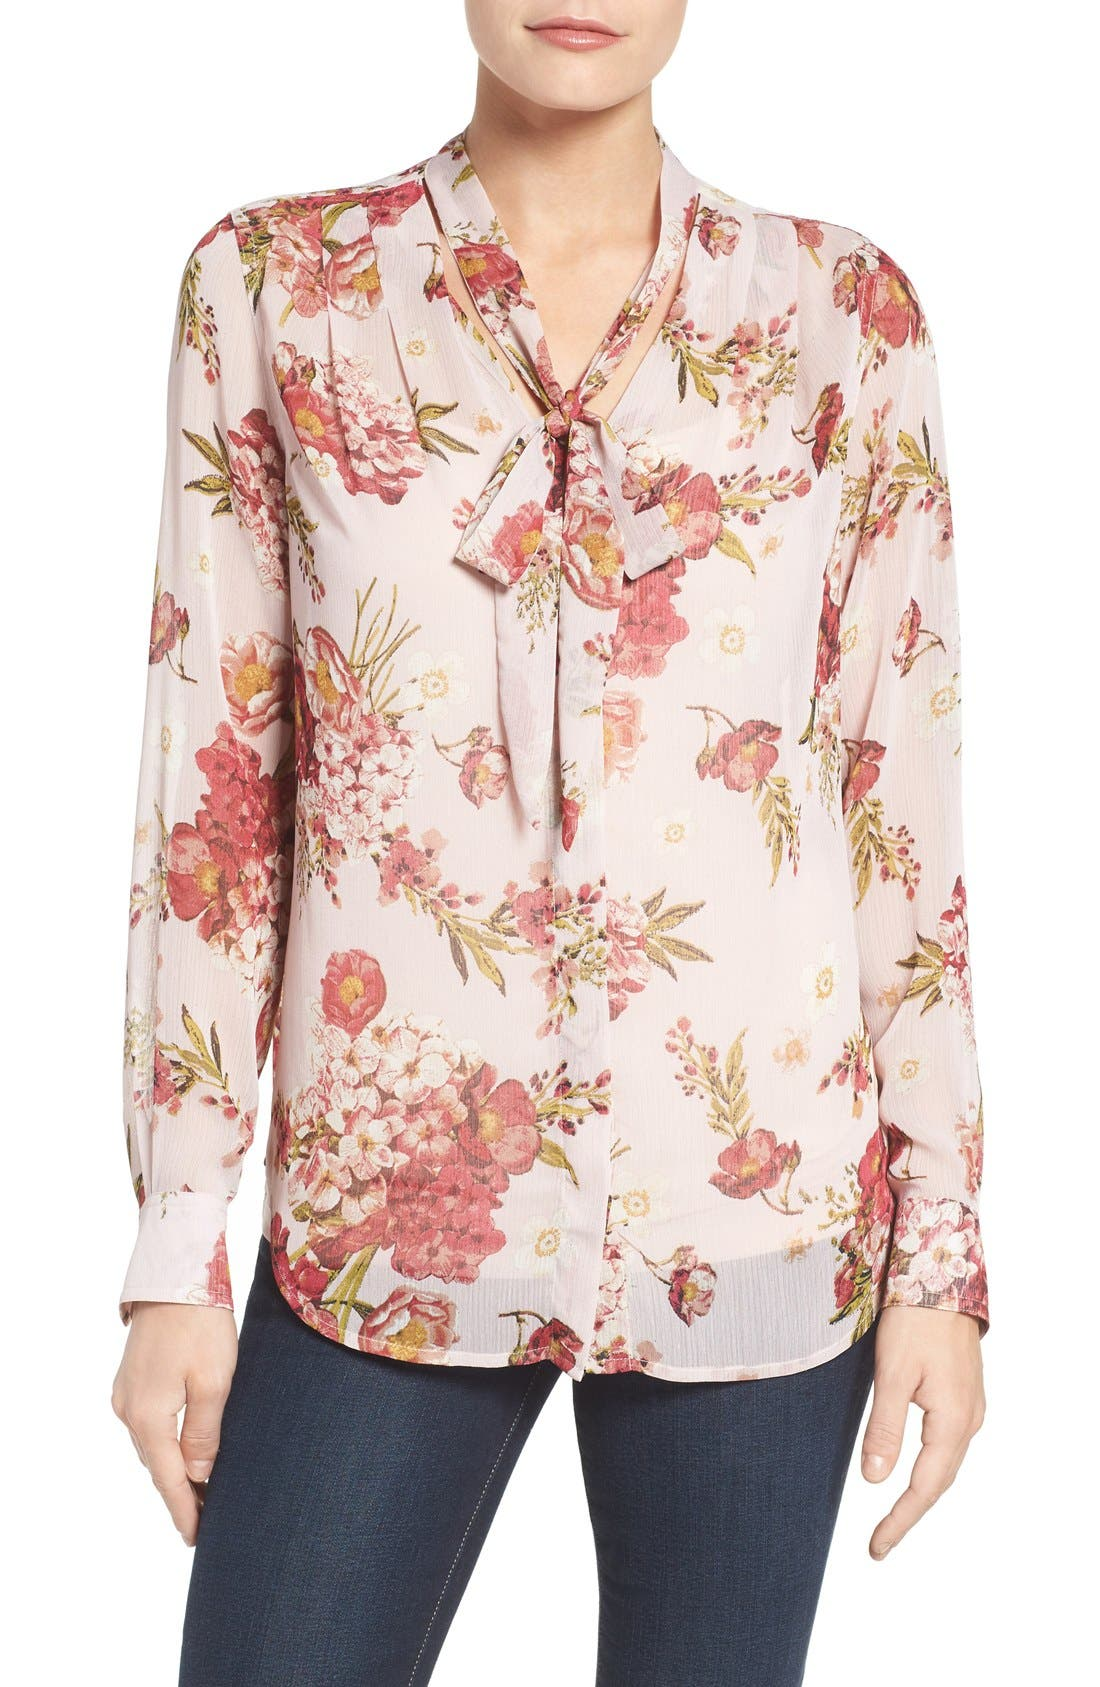 Main Image - KUT from the Kloth Amelie Tie Neck Floral Blouse